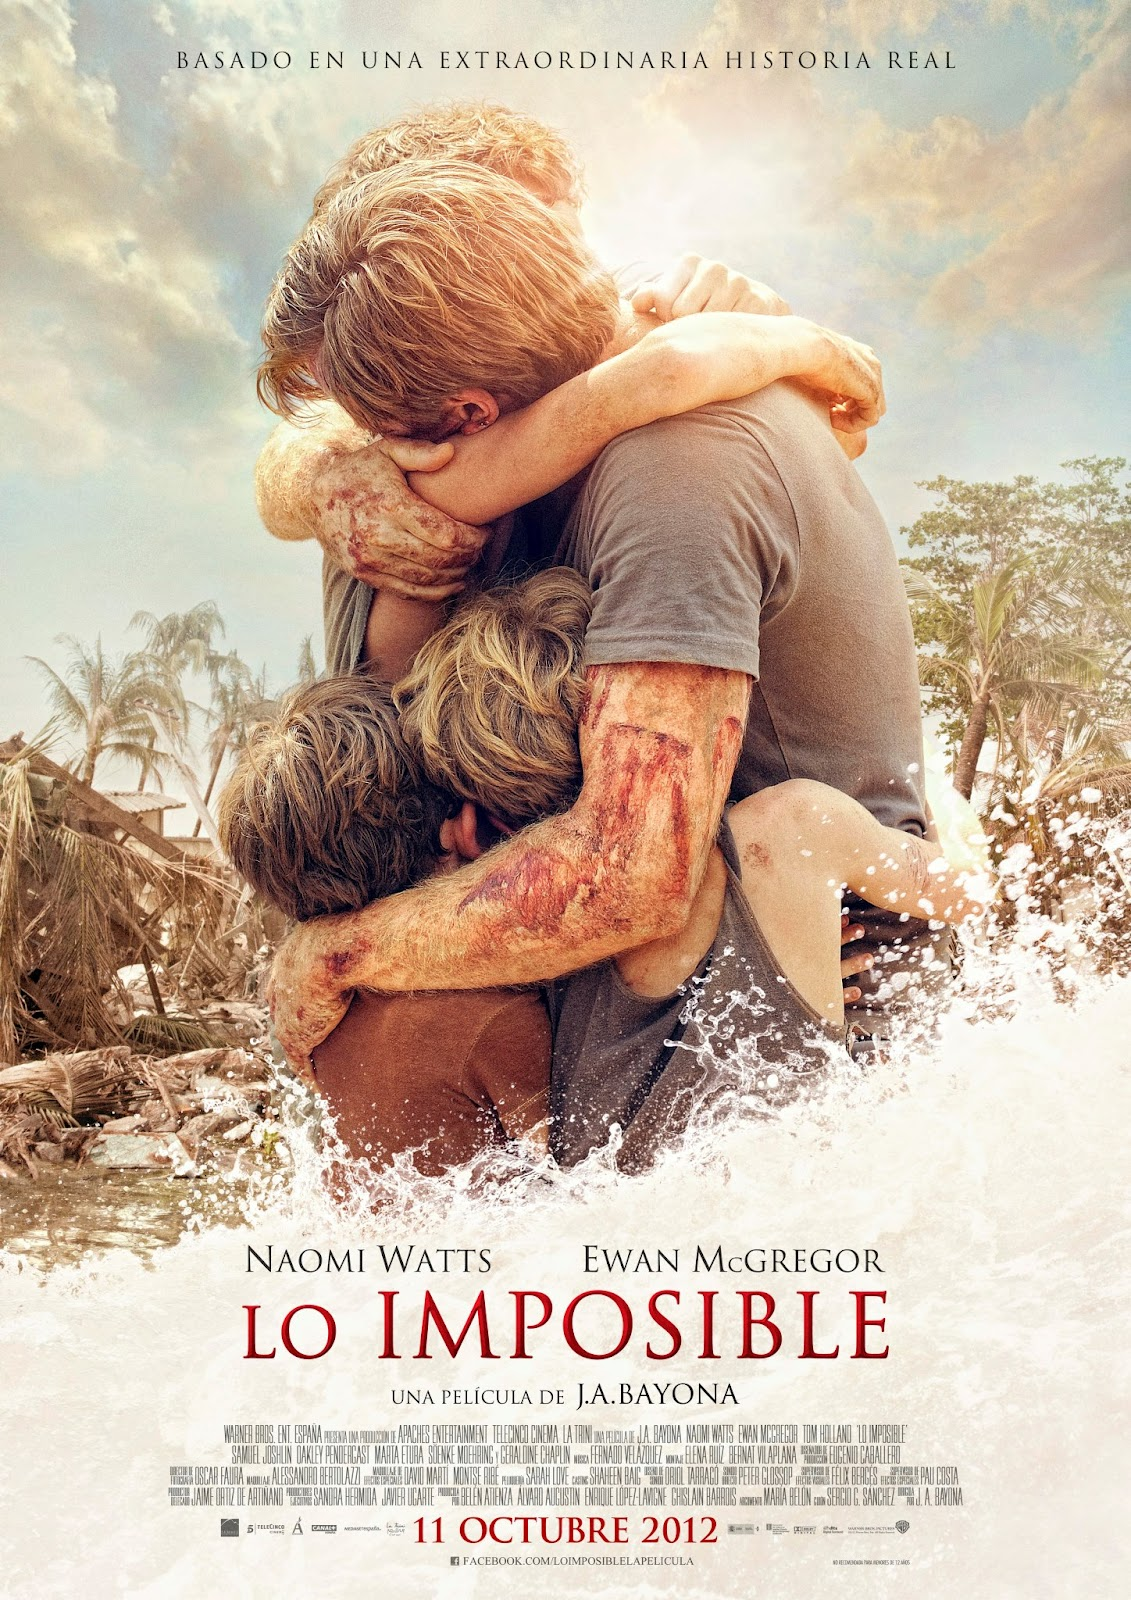 New International Poster & Image for The Impossible with Ewan McGregor & Naomi Watts